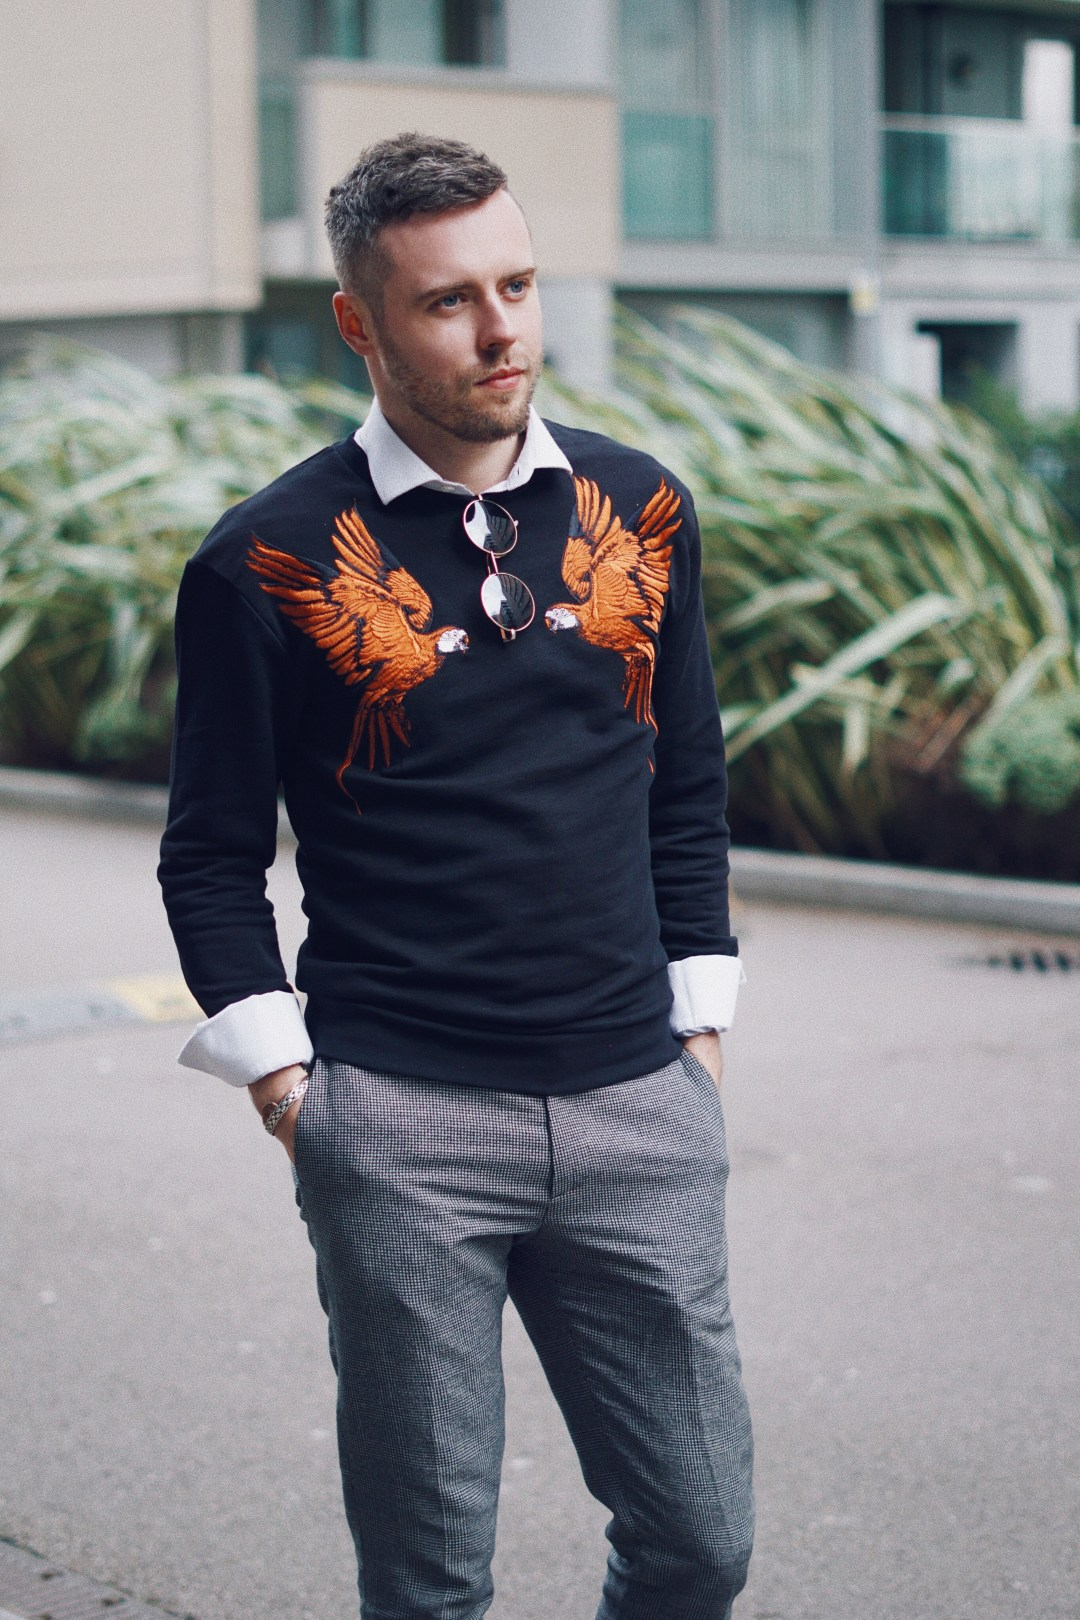 Wearing Parrots Sweatshirt from Zara, Checked Suit Trousers from Zara and Classic Shirt from River Island. UK Menswear Blogger.